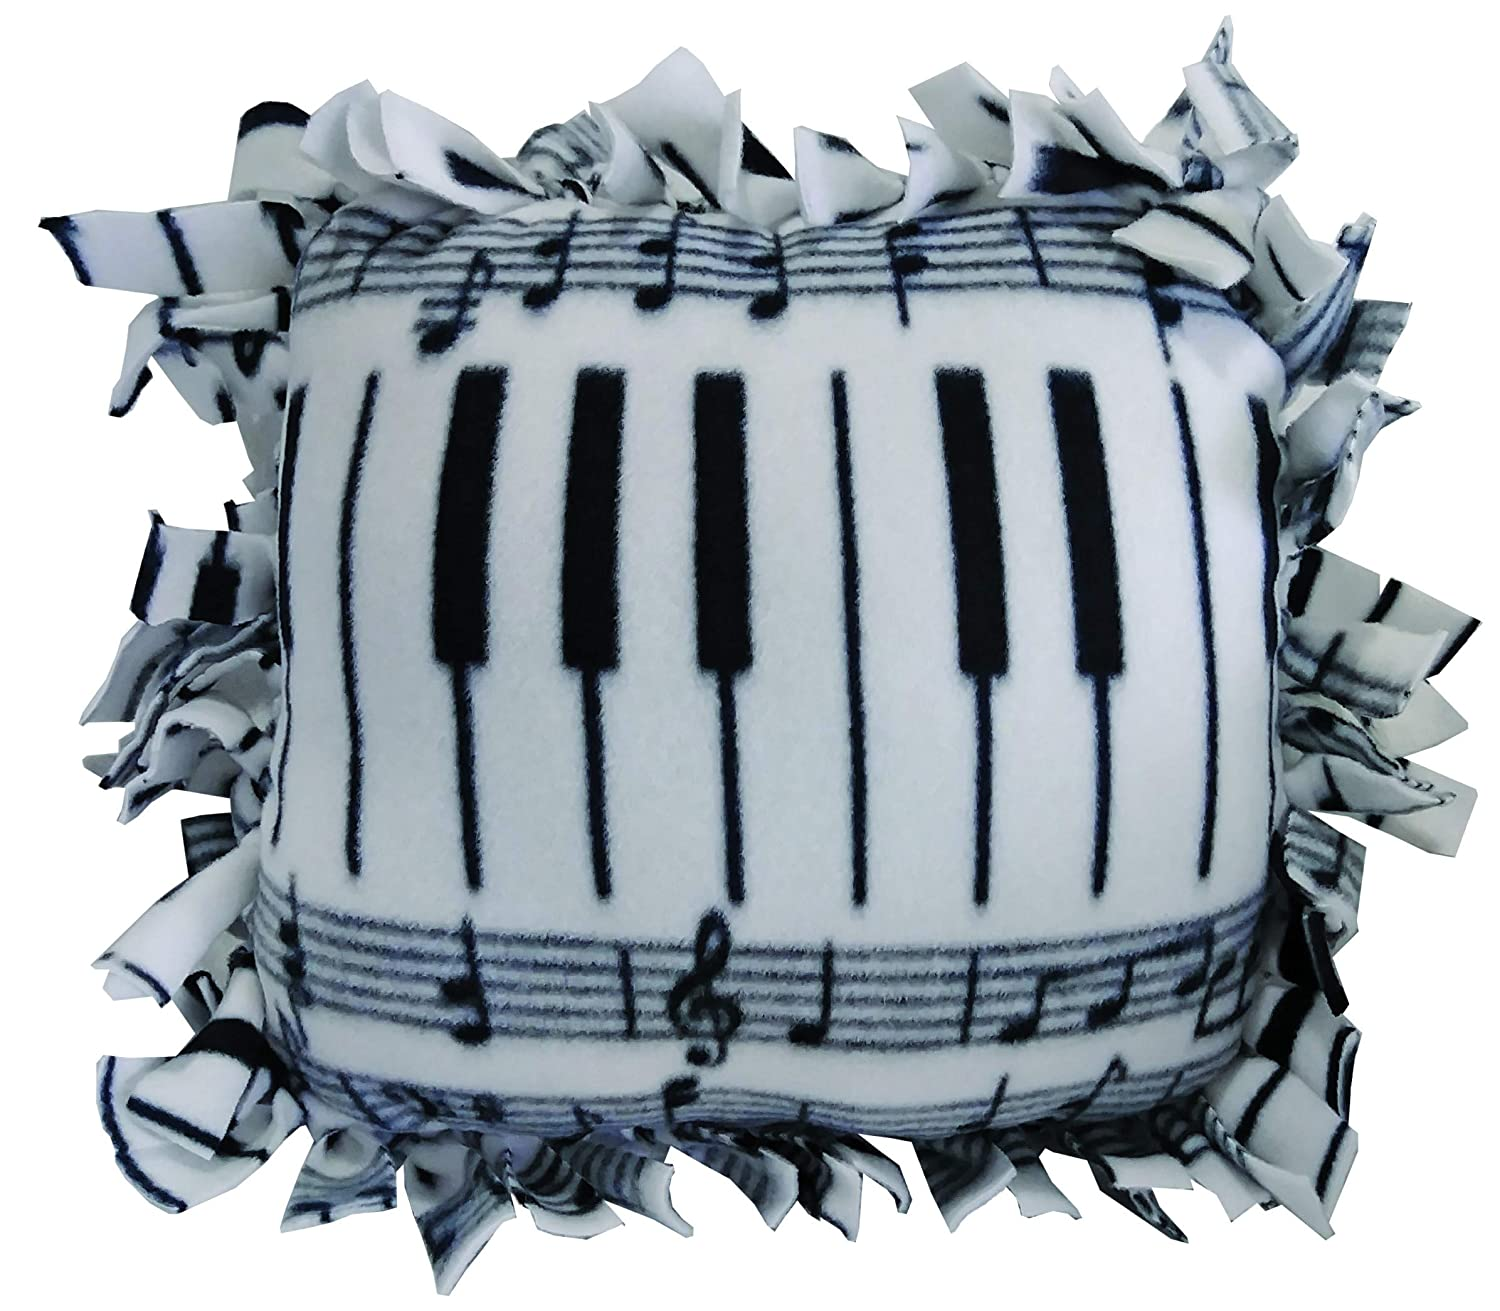 Girls and Boys DADM DIY Personalized No-Sew Piano Pillow SelfME Pillow Craft Kit Craft Project for Kids and Adults